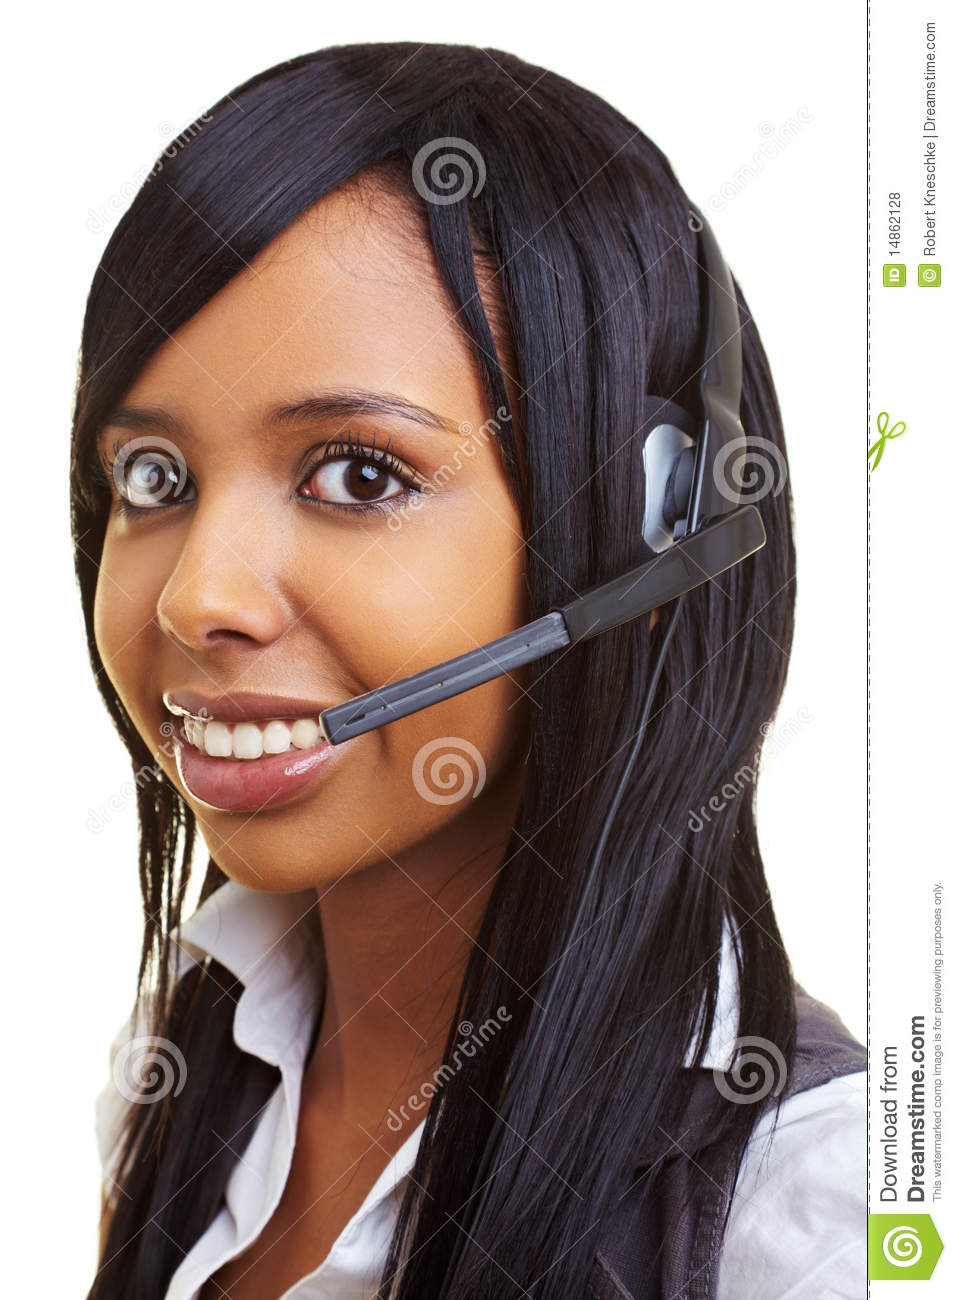 Student in a callcenter